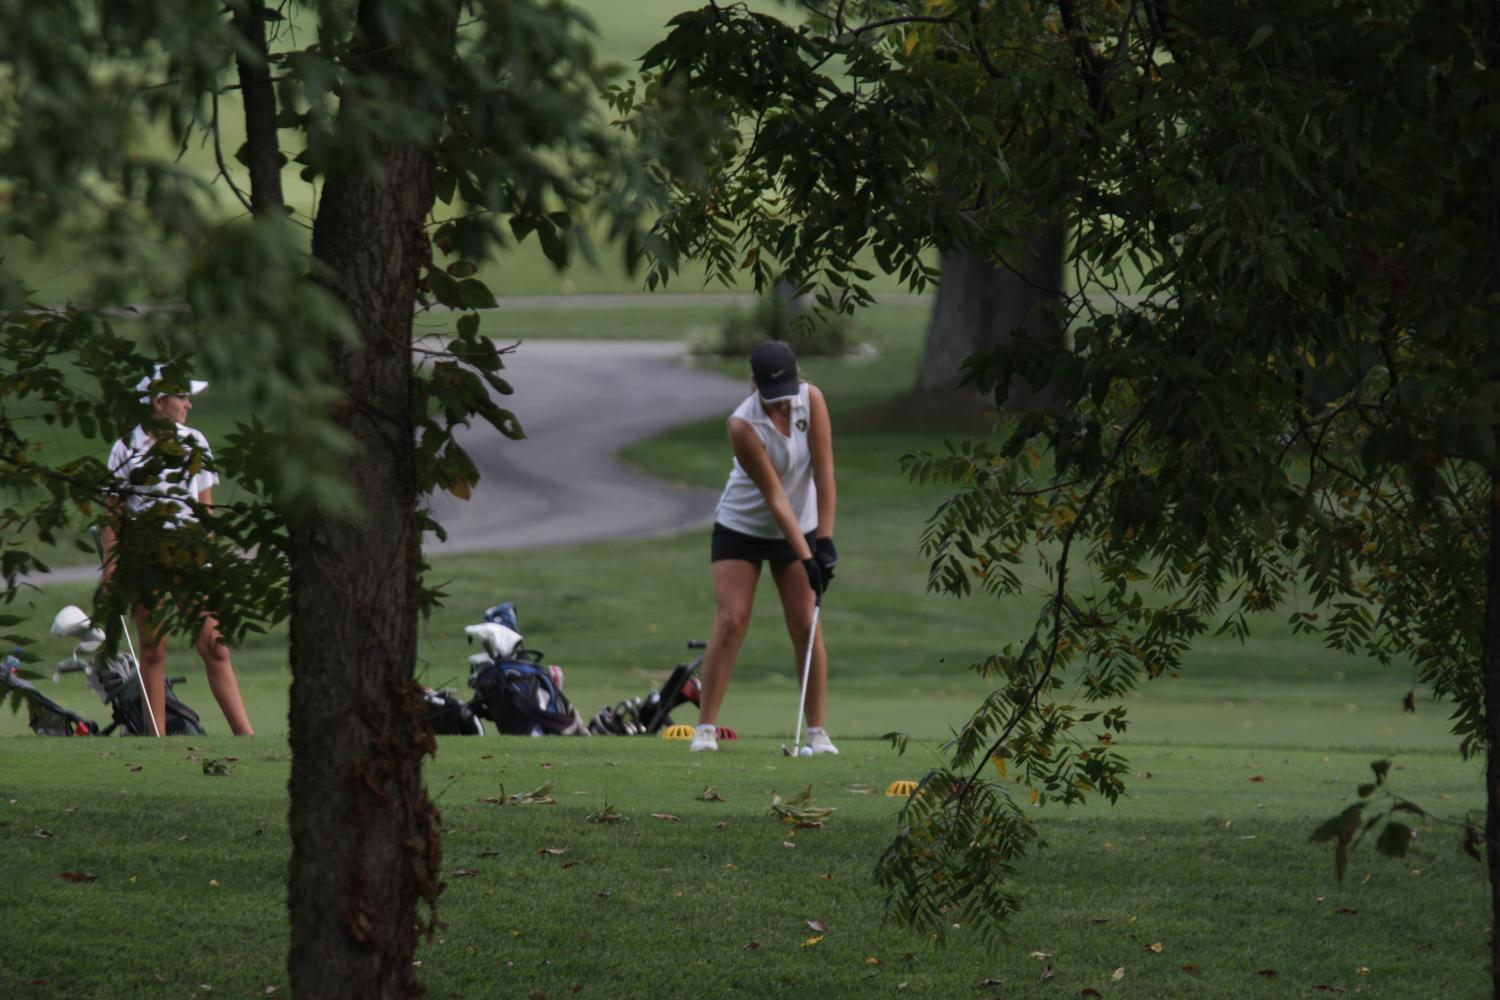 Senior+Briana+Schmidt+takes+her+stance+to+tee+off+at+Lake+Forest+Golf+Course++++Aug.+31+during+her+tri-match+between+Timberland+and+St.+Dominic.+Schmidt+has+been+playing+varsity+golf+for+FHN+since+freshman+year.+